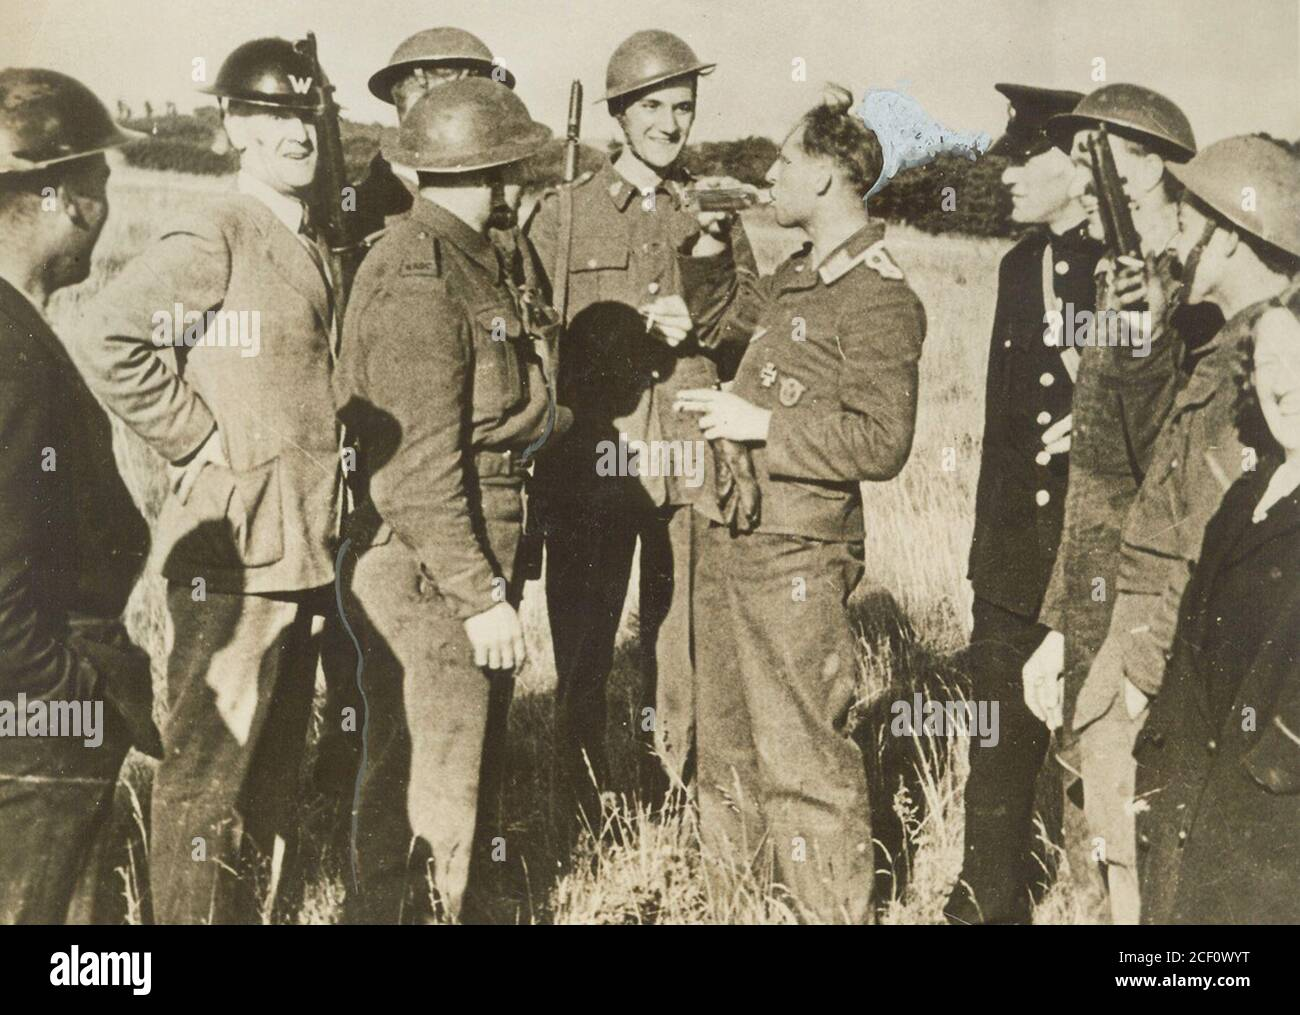 British Home Guard High Resolution Stock Photography And Images Alamy